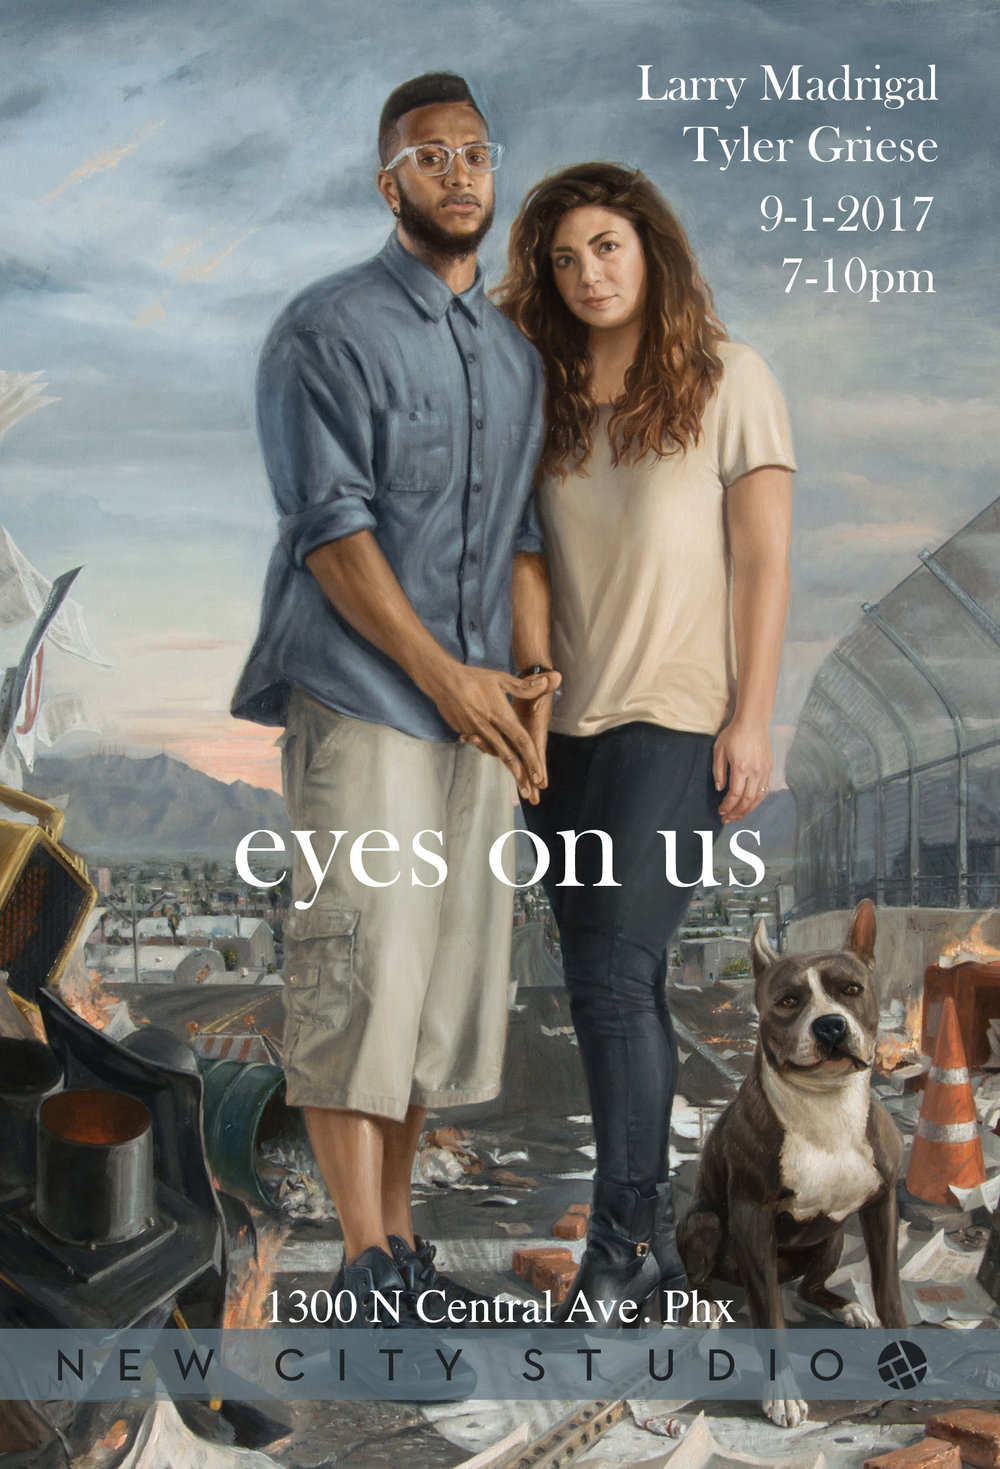 "I invite you all to come see my upcoming two-person show with Tyler Griese at New City Studio in Phoenix, Arizona!  ""Eyes on Us"" is an exhibition exploring contemporary portraiture though our different approach in capturing and elevating individuals. Although our styles differ, we both share a deep passion for centralizing the human figure while expressing concern for the idea of personhood and the human condition in art. I am extremely excited to be showing much of my paintings together for the first time in Phoenix. And better yet, they will be in conversation with the fabulous work of Tyler Griese.  Tyler's paintings contrast between warm and cool tones simultaneously by using colored light to illuminate his figures, enhancing the conceptual possibilities of the human psyche through color and composition. You can check out his work at www.tylergriese.com   Opening Night: Friday, September 1st, 7 - 10 p.m. (First Friday) at New City Studio 1300 N Central Avenue, Phoenix as well as Friday, September 15th, 6 - 9 p.m.  (Third Friday). The show will also be open for viewing on Sundays during New City's Morning Services."